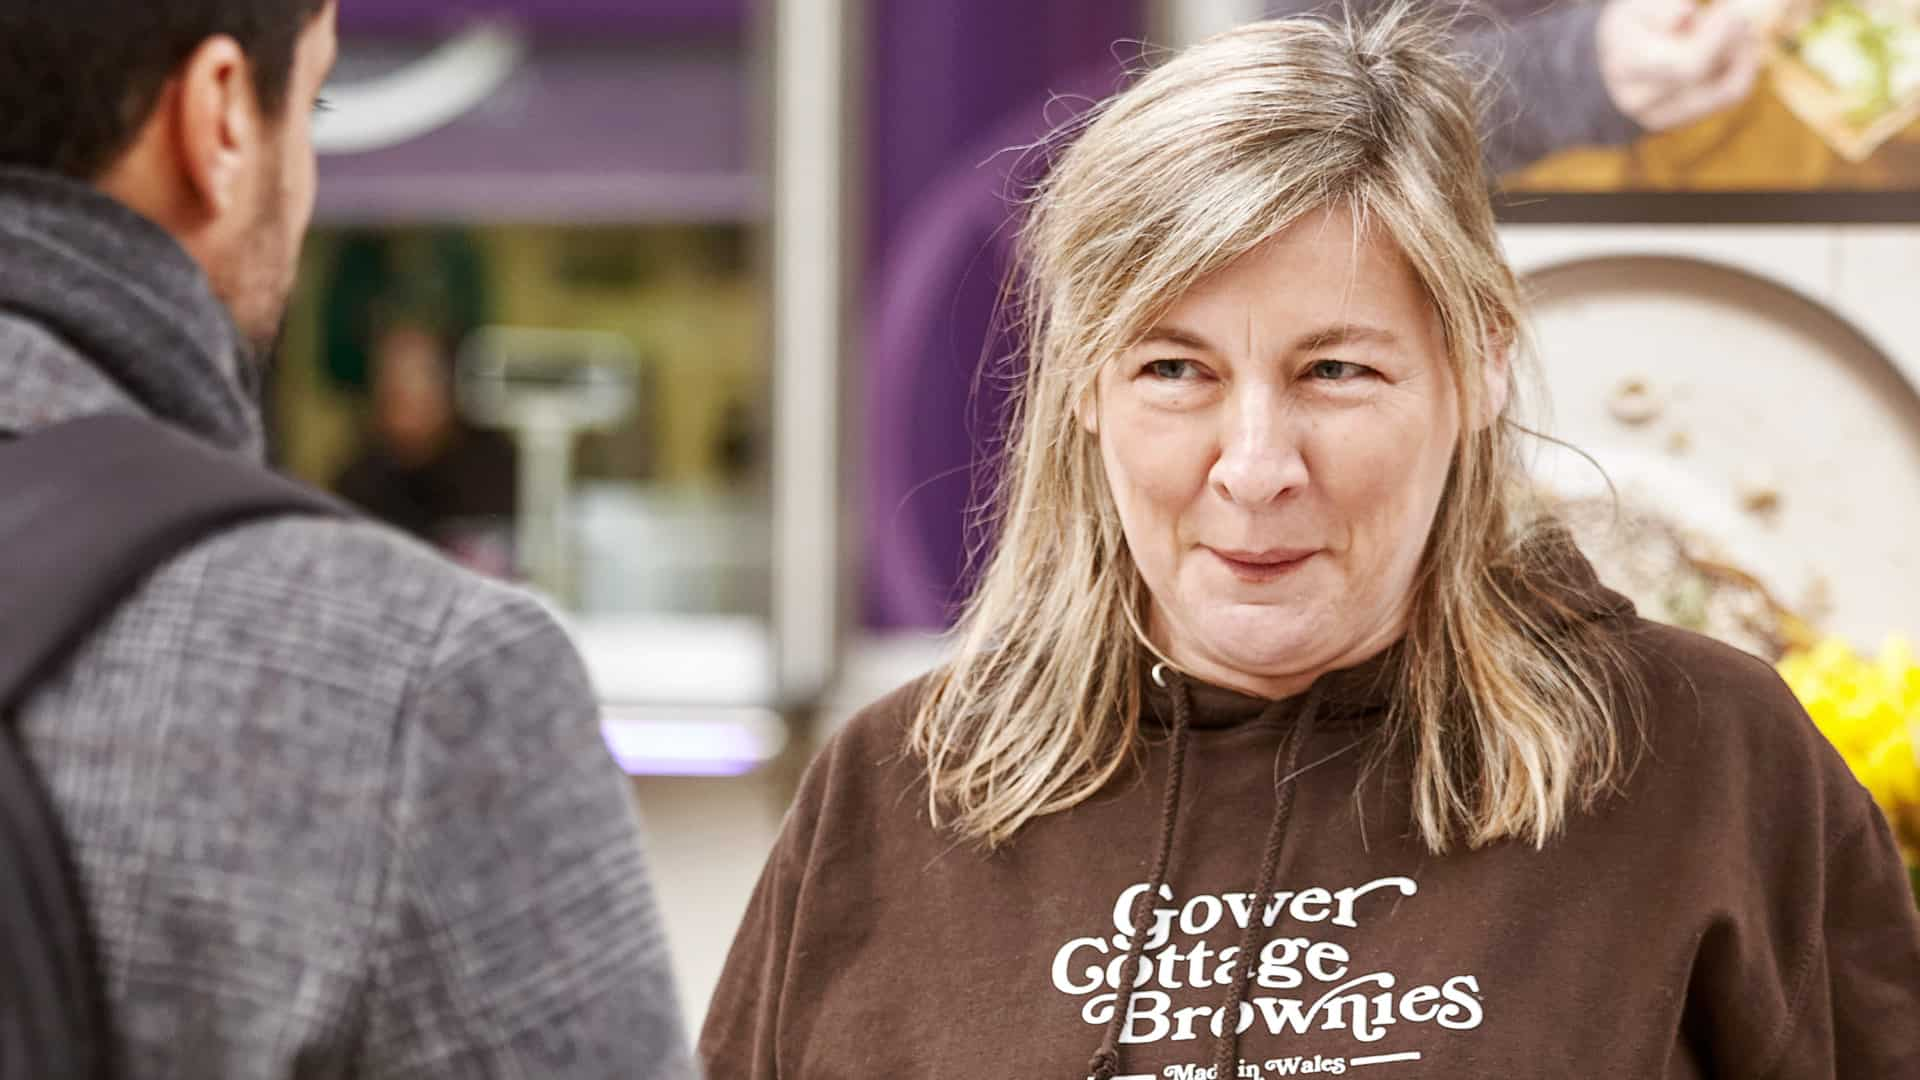 The Seasoned Grocer - Testimonial from Gower Cottage Brownies